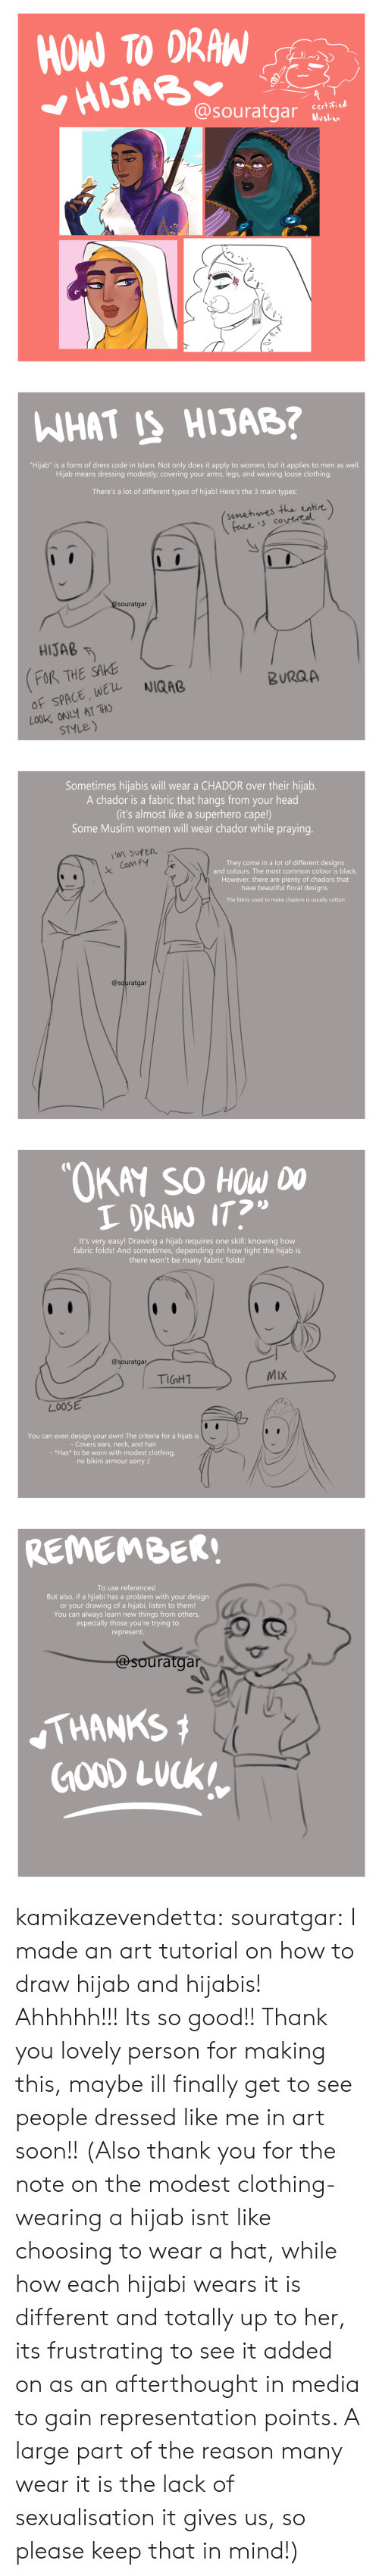 "Colours: HOW TO DRAW  HIJAB  @souratgar  certified  Muslim   WHAT IS HIJAB?  ""Hijab"" is a form of dress code in Islam. Not only does it apply to women, but it applies to men as well.  Hijab means dressing modestly; covering your arms, legs, and wearing loose clothing.  There's a lot of different types of hijab! Here's the 3 main types:  (somehimes the entire)  face is covereel  @Souratgar  HIJAB  FOR THE SAKE  OF SPACE, WEL  LOOK ONLY AT THO  STYLE)  NIQAB  BURQA   Sometimes hijabis will wear a CHADOR over their hijab.  A chador is a fabric that hangs from your head  (it's almost like a superhero cape!)  Some Muslim women will wear chador while praying.  M SUPER  They come in a lot of different designs  and colours. The most common colour is black.  Com FY  However, there are plenty of chadors that  have beautiful floral designs.  The fabric used to make chadors is usually cotton.  @souratgar   ""OKAY SO HOW DO  I DRAN IT?  It's very easy! Drawing a hijab requi res one skill: knowing how  fabric folds! And sometimes, depending on how tight the hijab is  there won't be many fabric folds!  @souratgar  MIX  TIGHT  LOOSE  You can even design your own! The criteria for a hijab is  - Covers ears, neck, and hair  - *Has* to be worn with modest clothing,  no bikini armour sorry :(   REMEMBER!  To use references!  But also, if a hijiabi has a problem with your design  or your drawing of a hijabi, listen to them!  You can always learn new things from others,  especially those you're trying to  represent.  @souratgar  THANKS  GOOD LUCK kamikazevendetta:  souratgar: I made an art tutorial on how to draw hijab and hijabis! Ahhhhh!!! Its so good!! Thank you lovely person for making this, maybe ill finally get to see people dressed like me in art soon!!   (Also thank you for the note on the modest clothing- wearing a hijab isnt like choosing to wear a hat, while how each hijabi wears it is different and totally up to her, its frustrating to see it added on as an afterthought in media to gain representation points. A large part of the reason many wear it is the lack of sexualisation it gives us, so please keep that in mind!)"